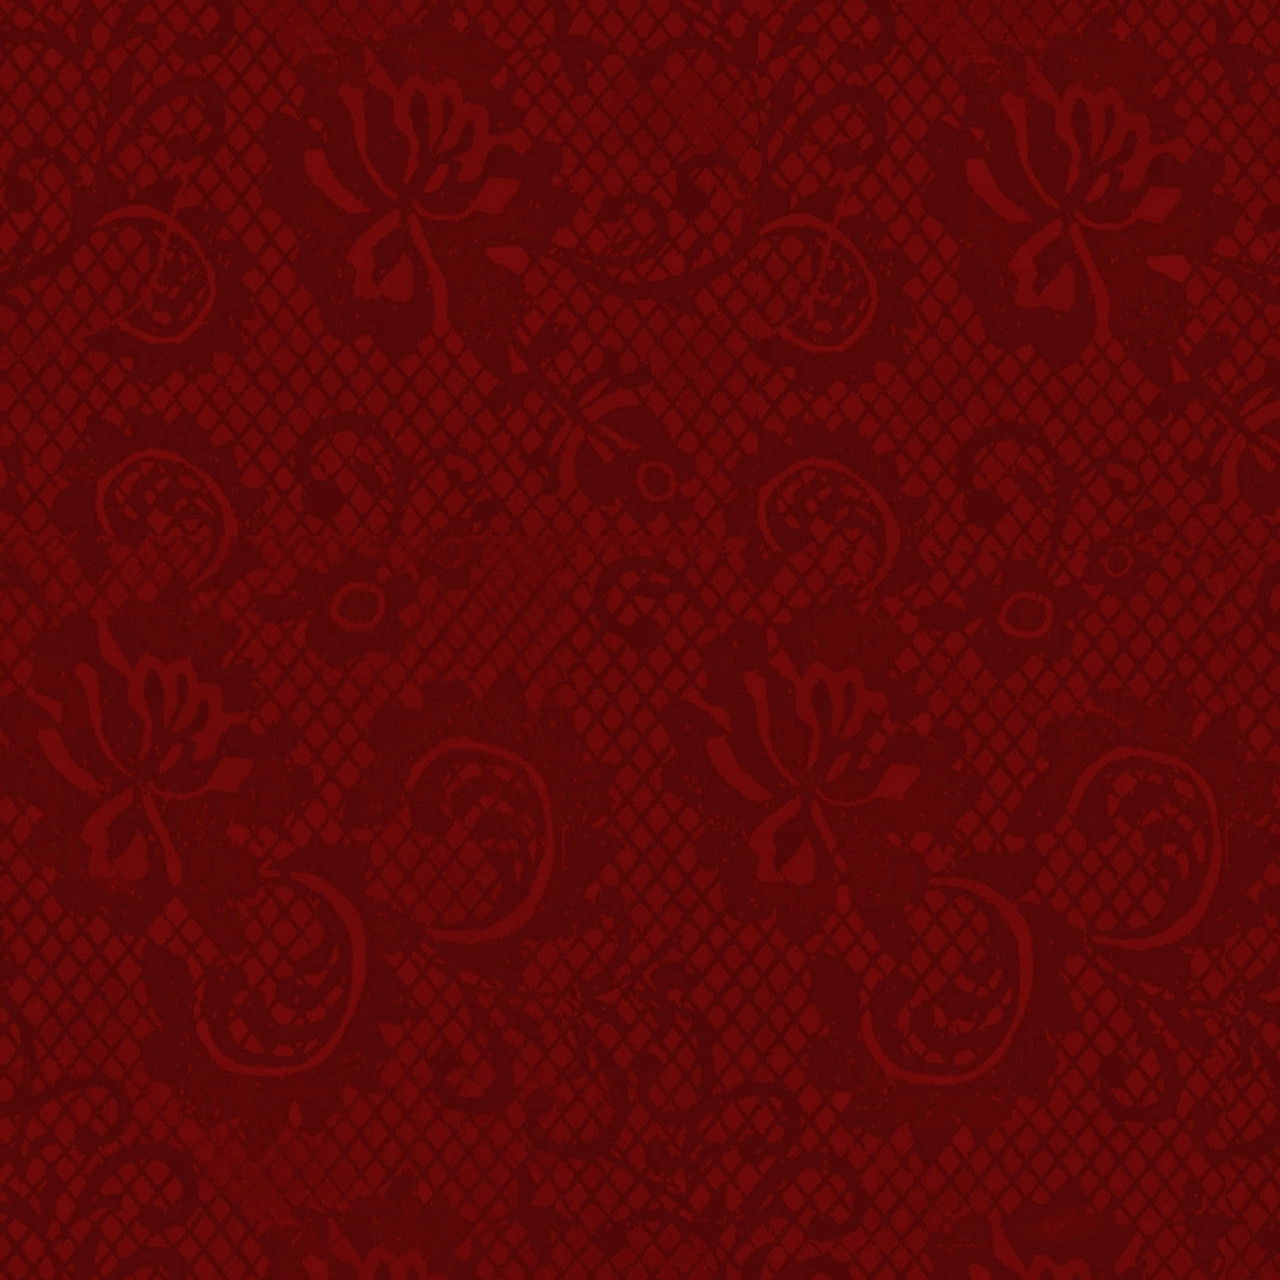 crimson gift wrap, lace wrapping paper